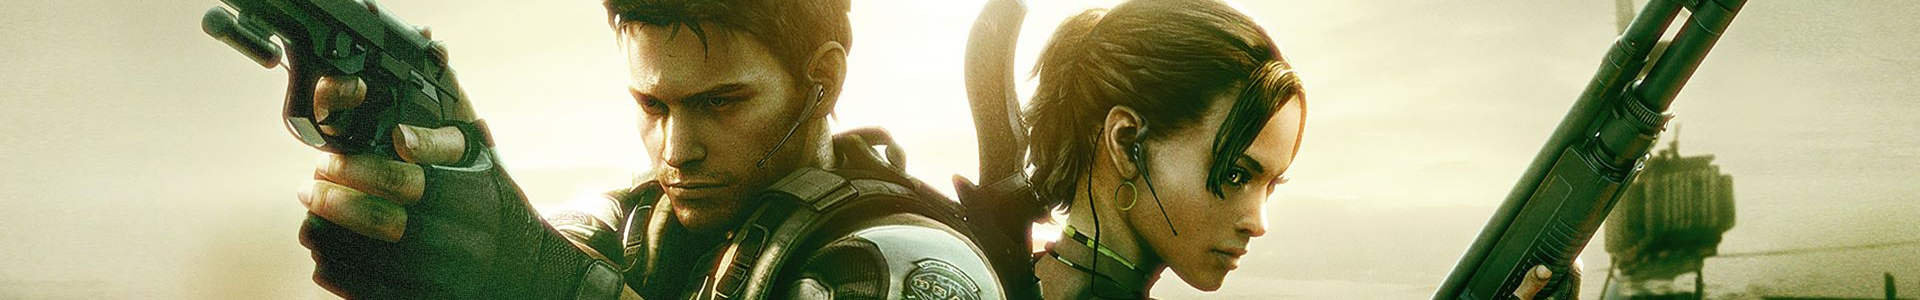 resident evil 5 characters